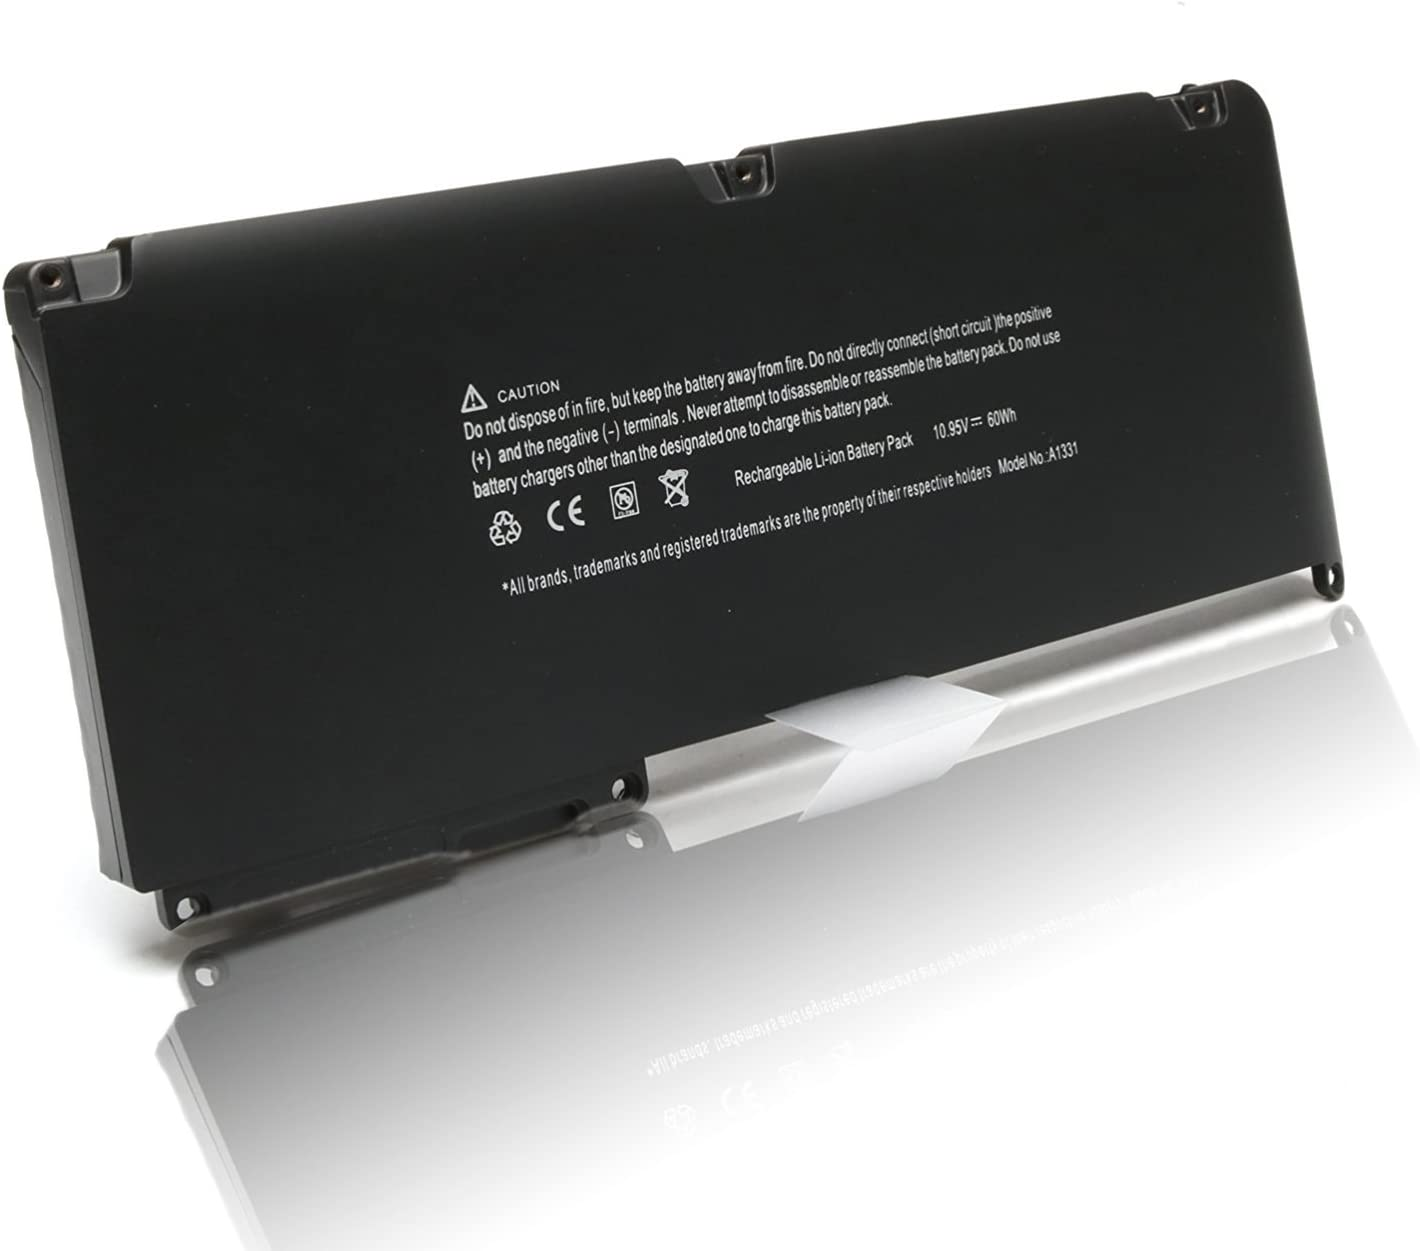 New 60Wh 11.1V Laptop Battery for Apple a1342 a1331 MacBook 13.3'' Unibody (Late 2009 Mid 2010) mc516ll/a mc373ll/a mc118ll/a mc372ll/a mc375ll/a mc226ll/a-DJW